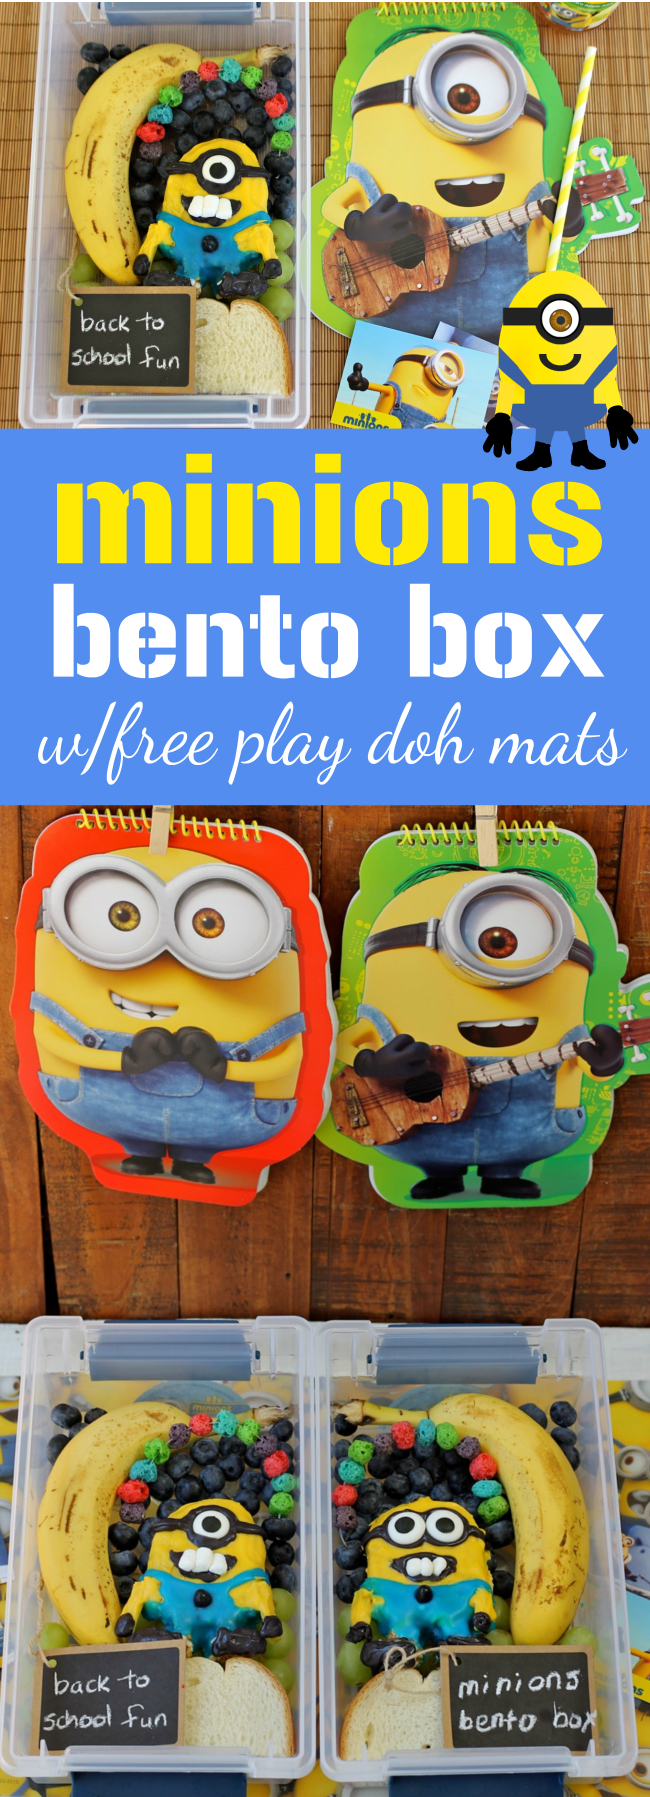 free minions play doh mats and minions bento box tutorial happy and blessed home. Black Bedroom Furniture Sets. Home Design Ideas